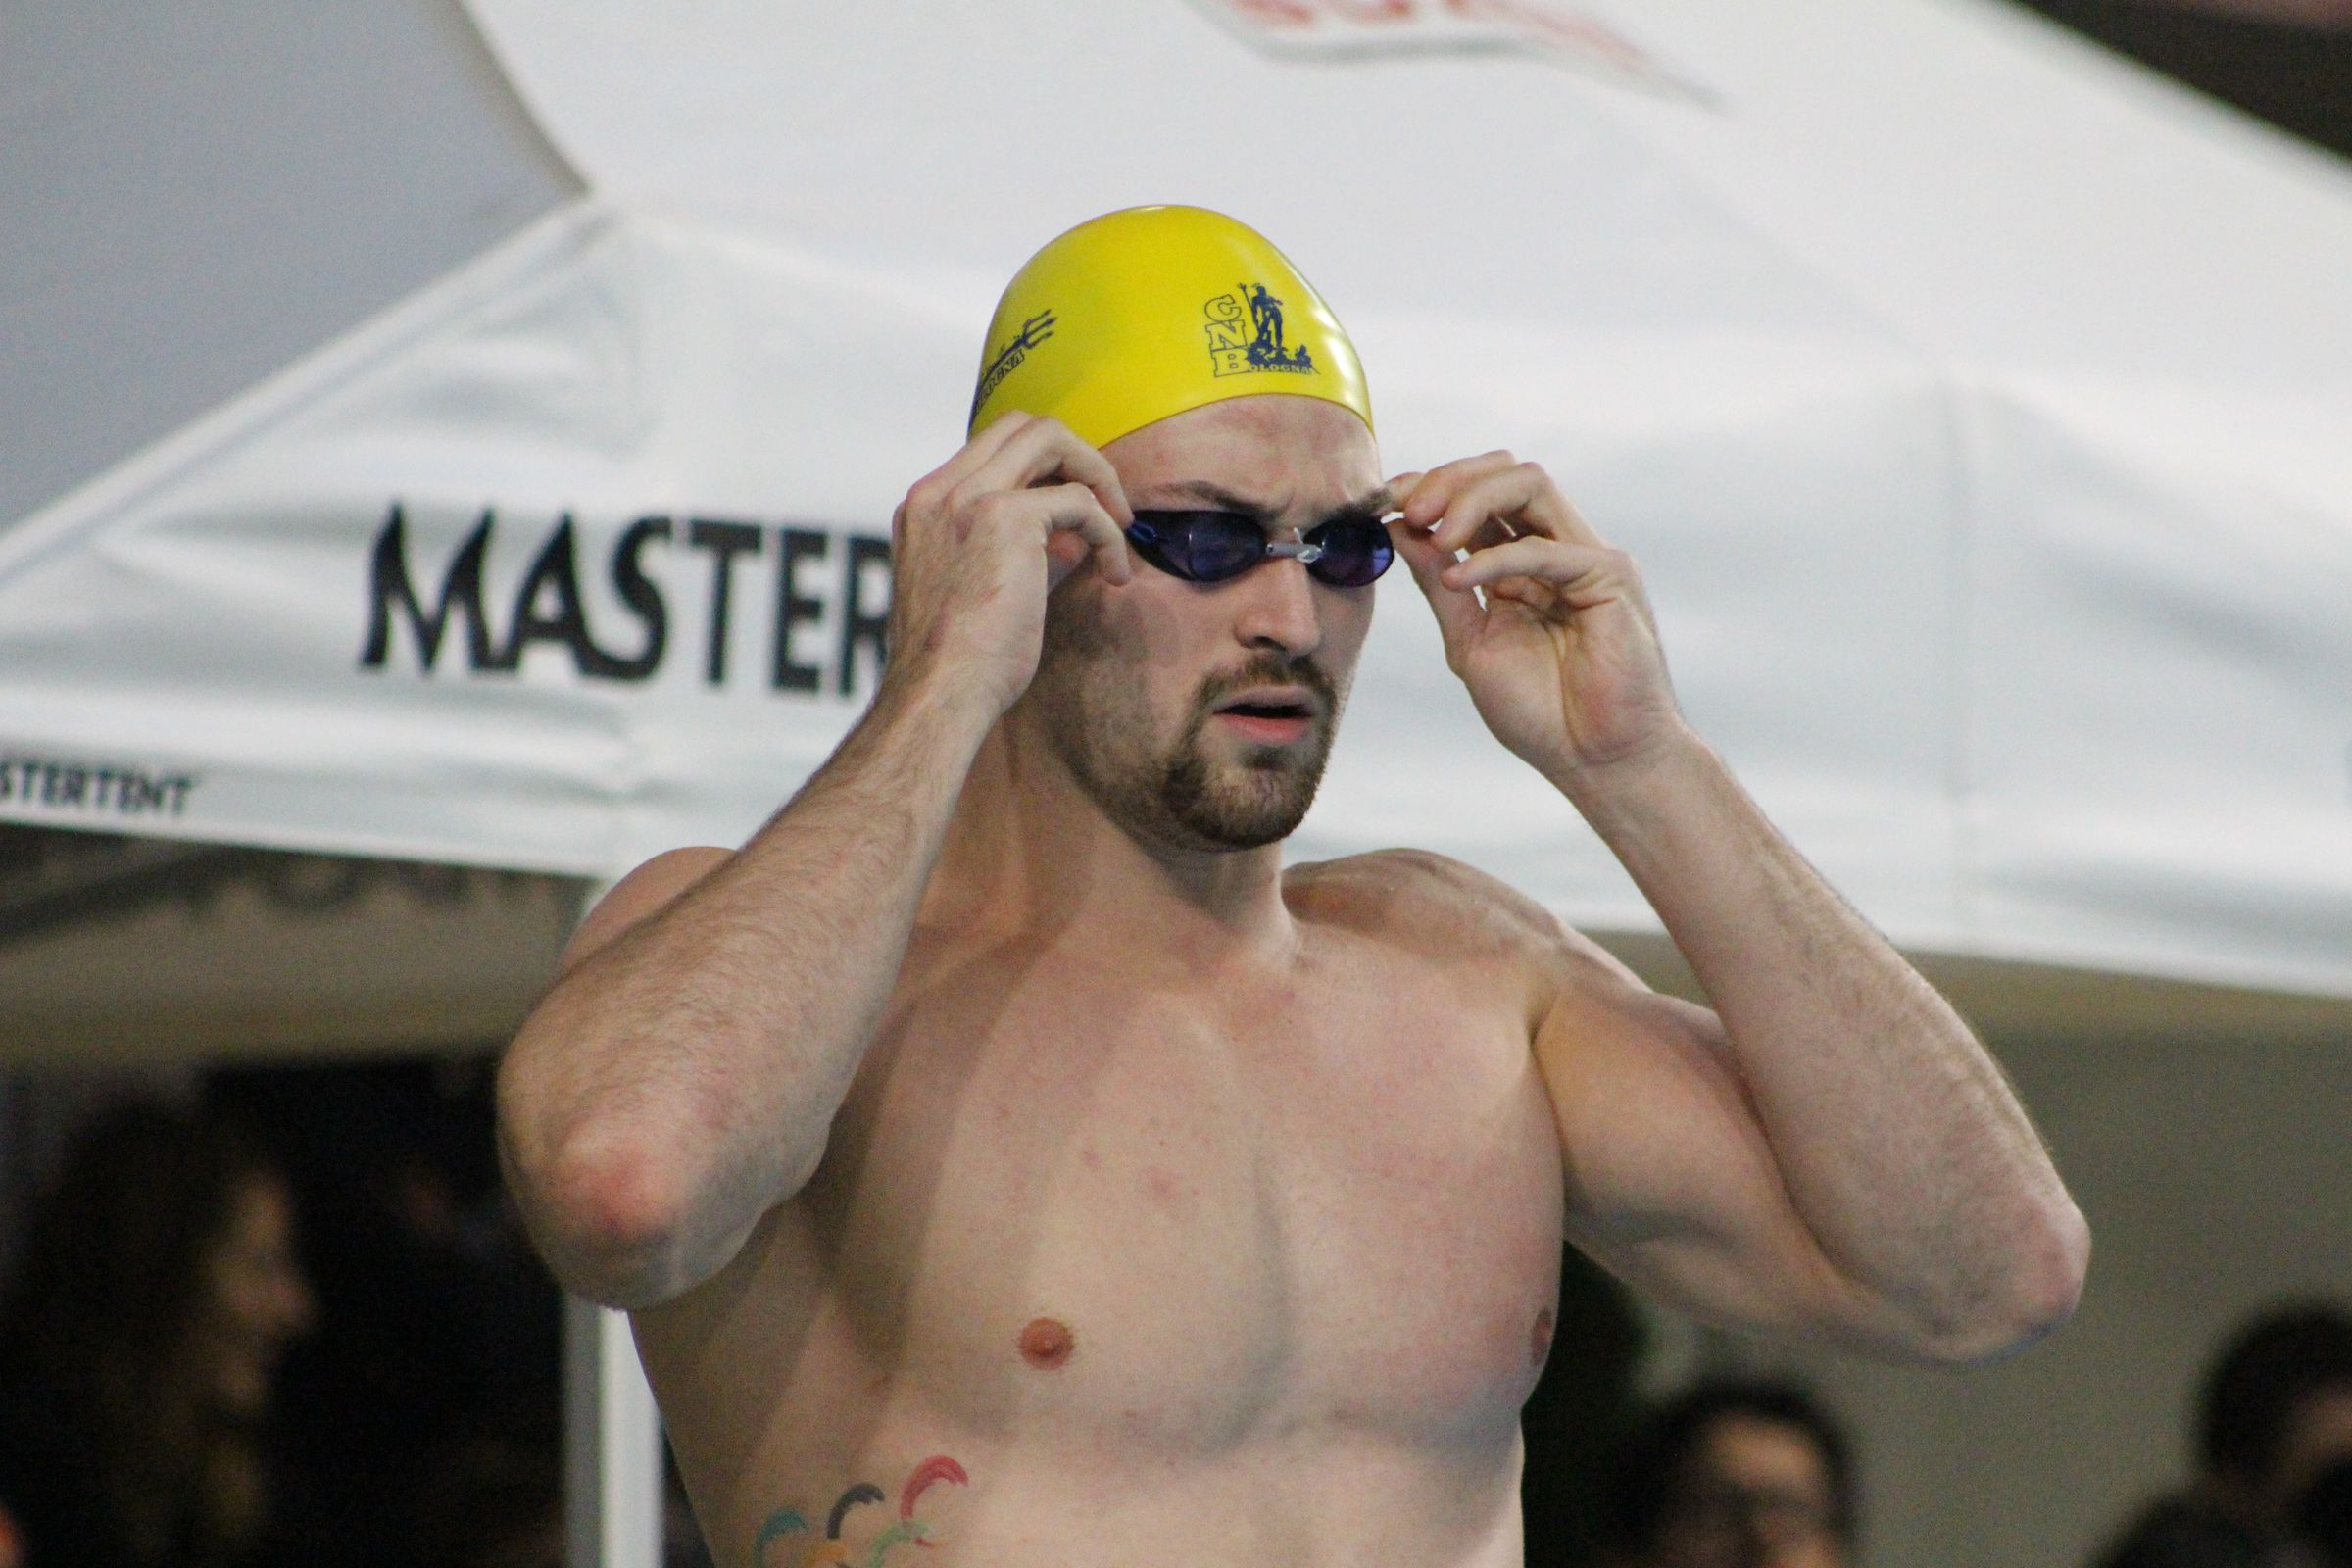 Marco Orsi - Swimming World News